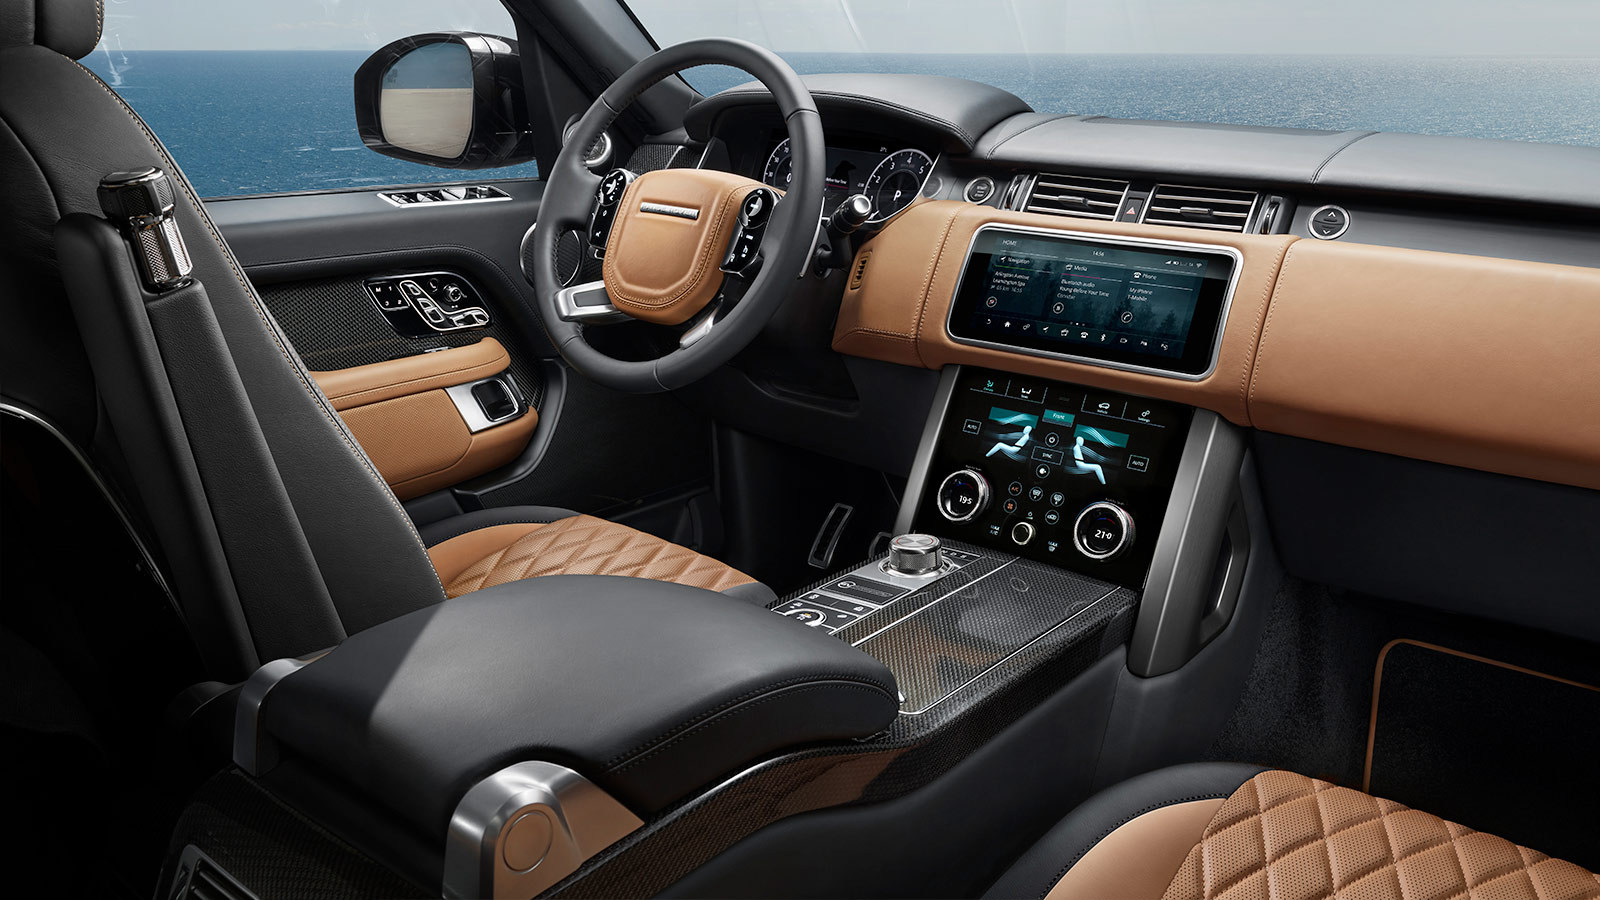 Range rover interior gallery land rover - Range rover with red leather interior ...